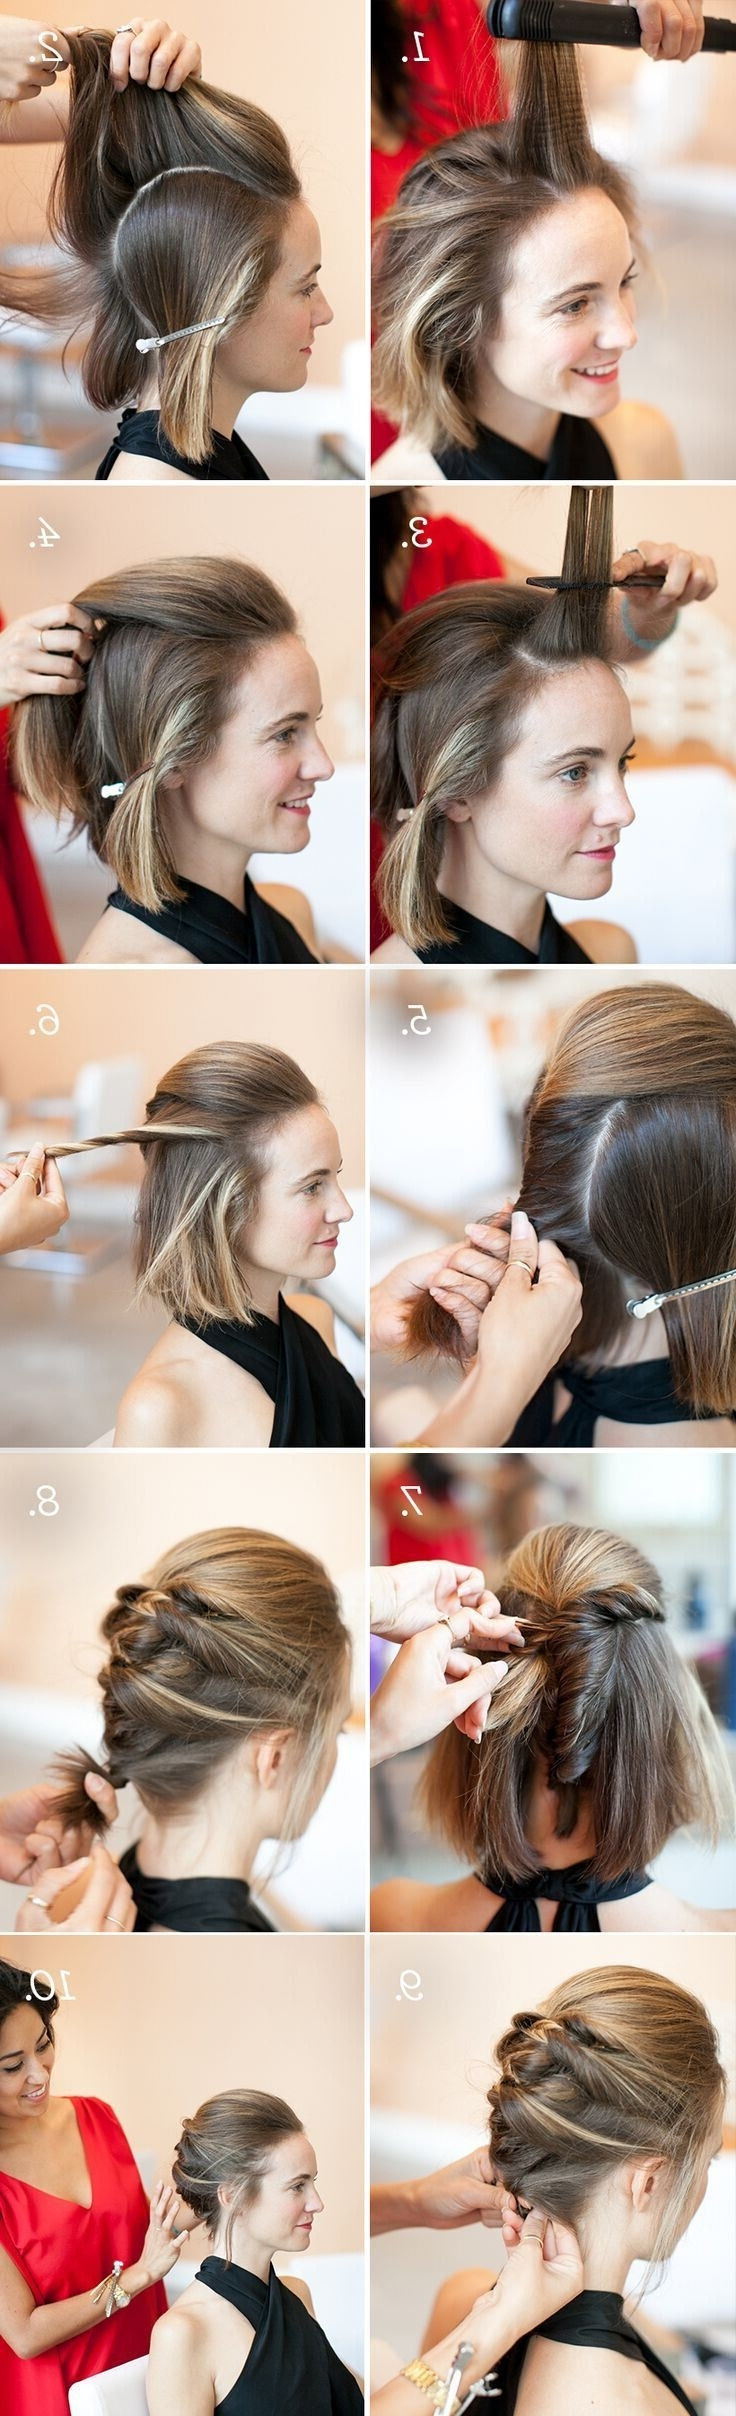 20 Exciting New Intricate Braid Updo Hairstyles – Popular Haircuts For Recent Intricate Updo Ponytail Hairstyles For Highlighted Hair (View 11 of 20)